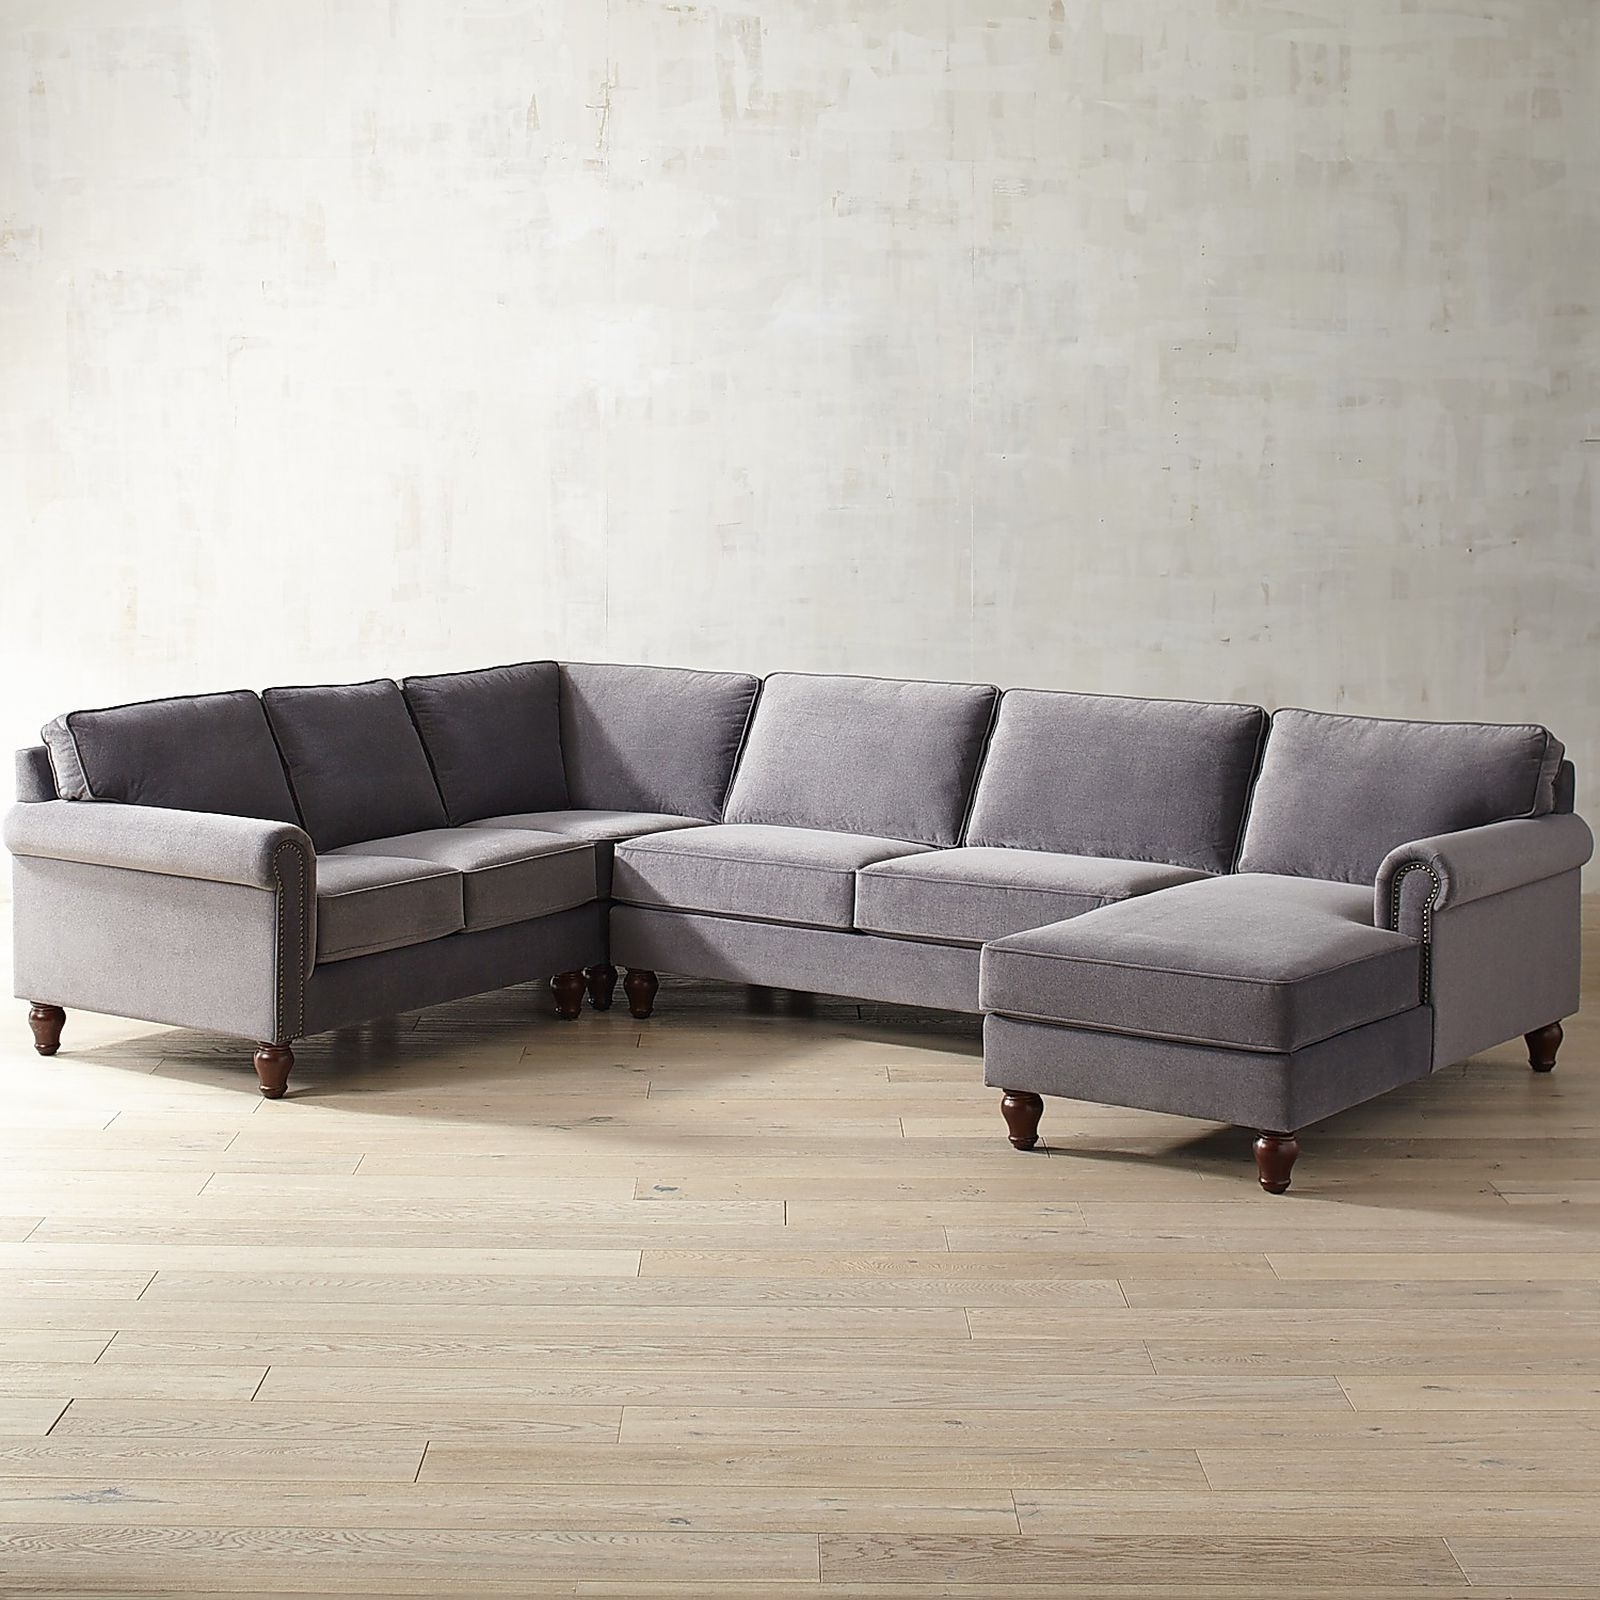 Fabric Sectional Sofas Canada 15 The Best Canada Sale Sectional Sofas